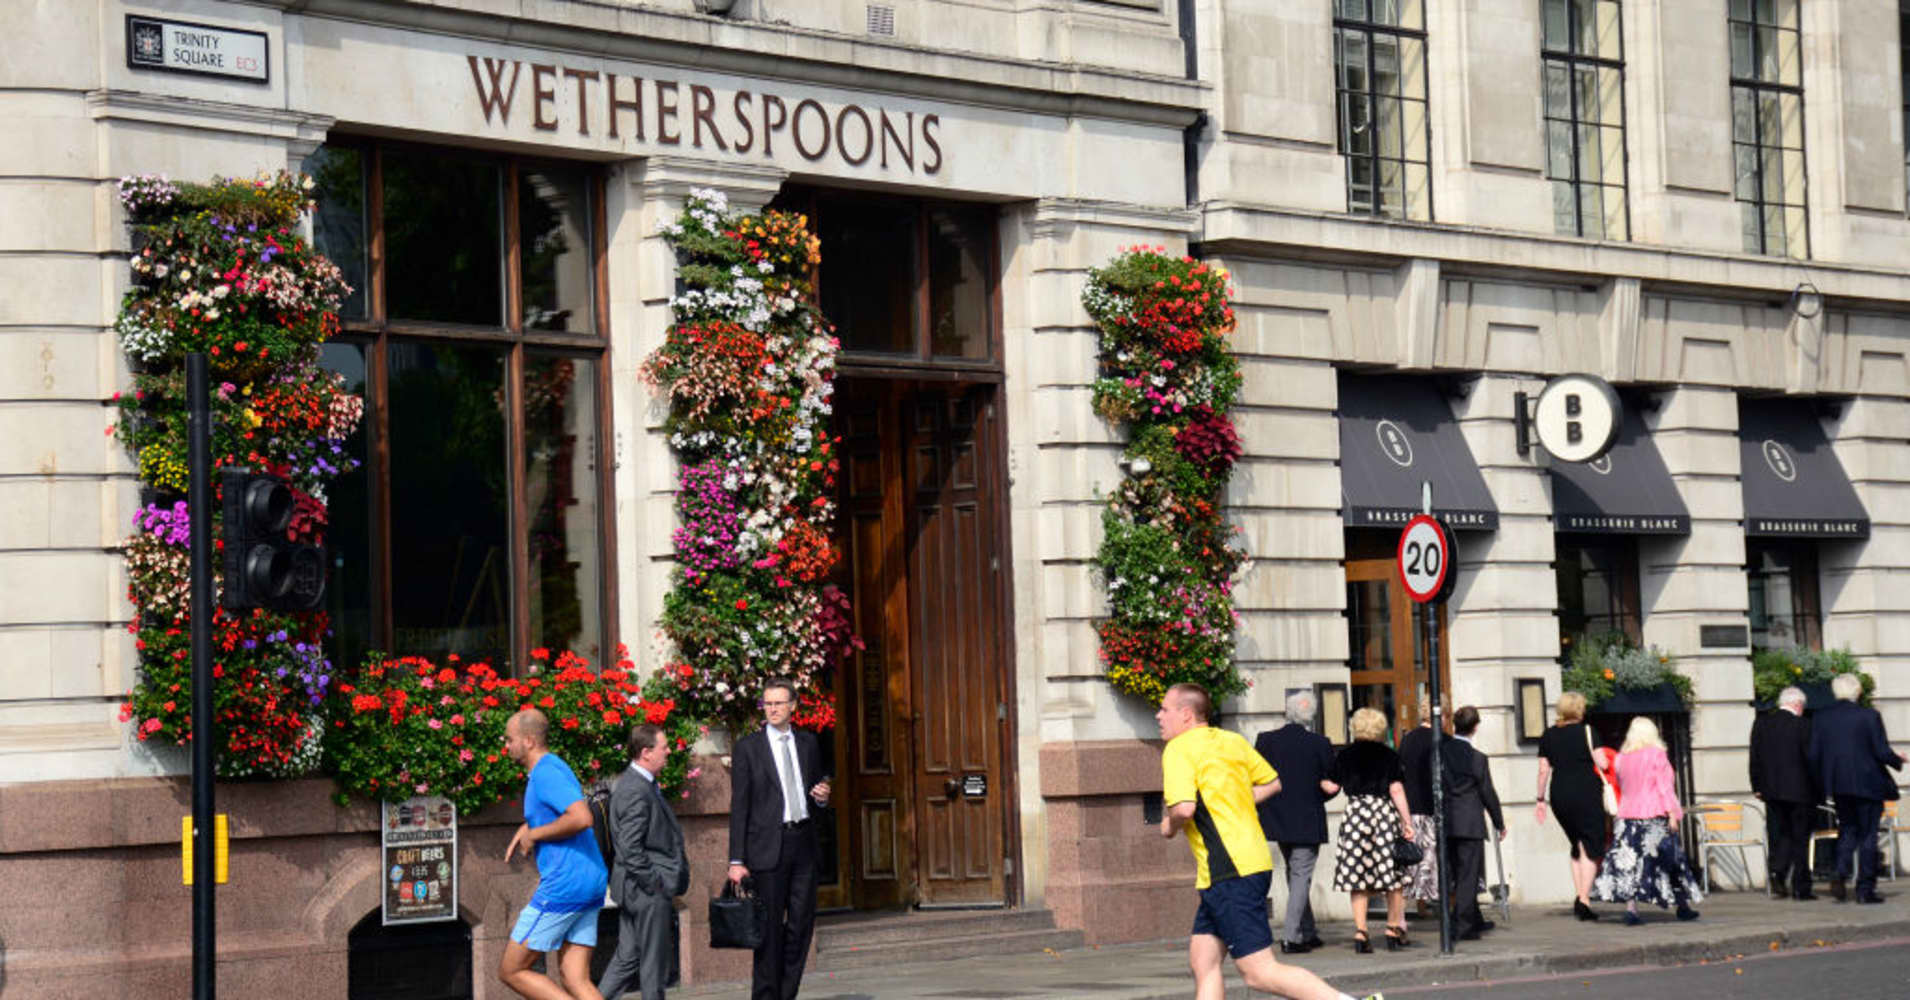 High labor costs eat into JD Wetherspoon's profit